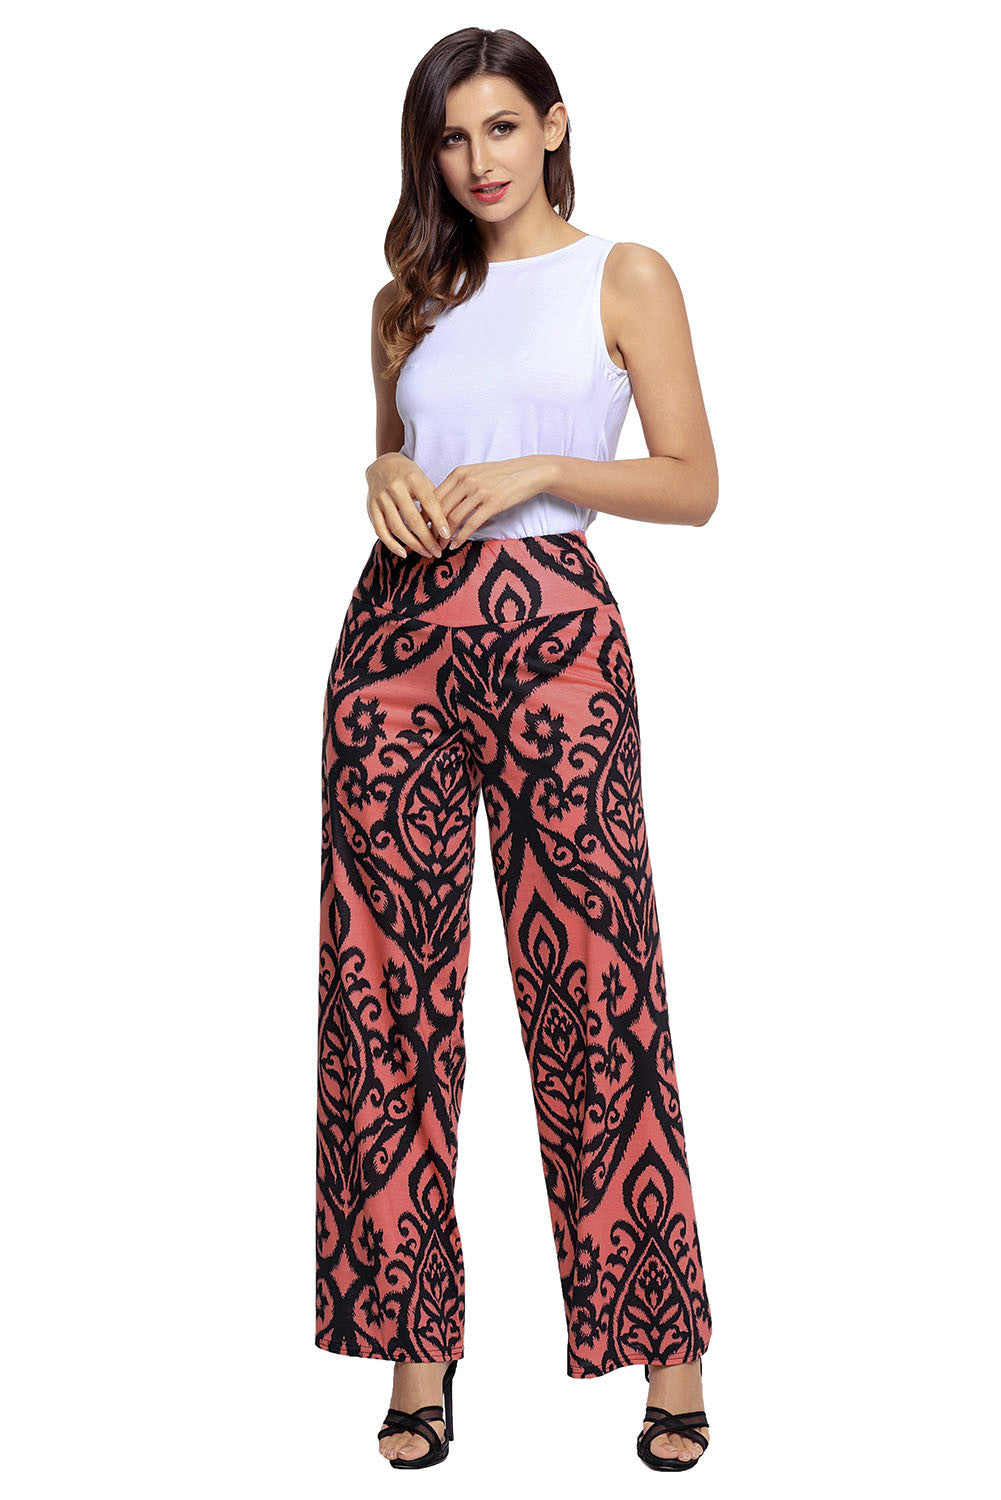 Chicloth-Black-Damask-Print-Palazzo-Pants-Women's Clothes||Pants & Culotte-Chicloth